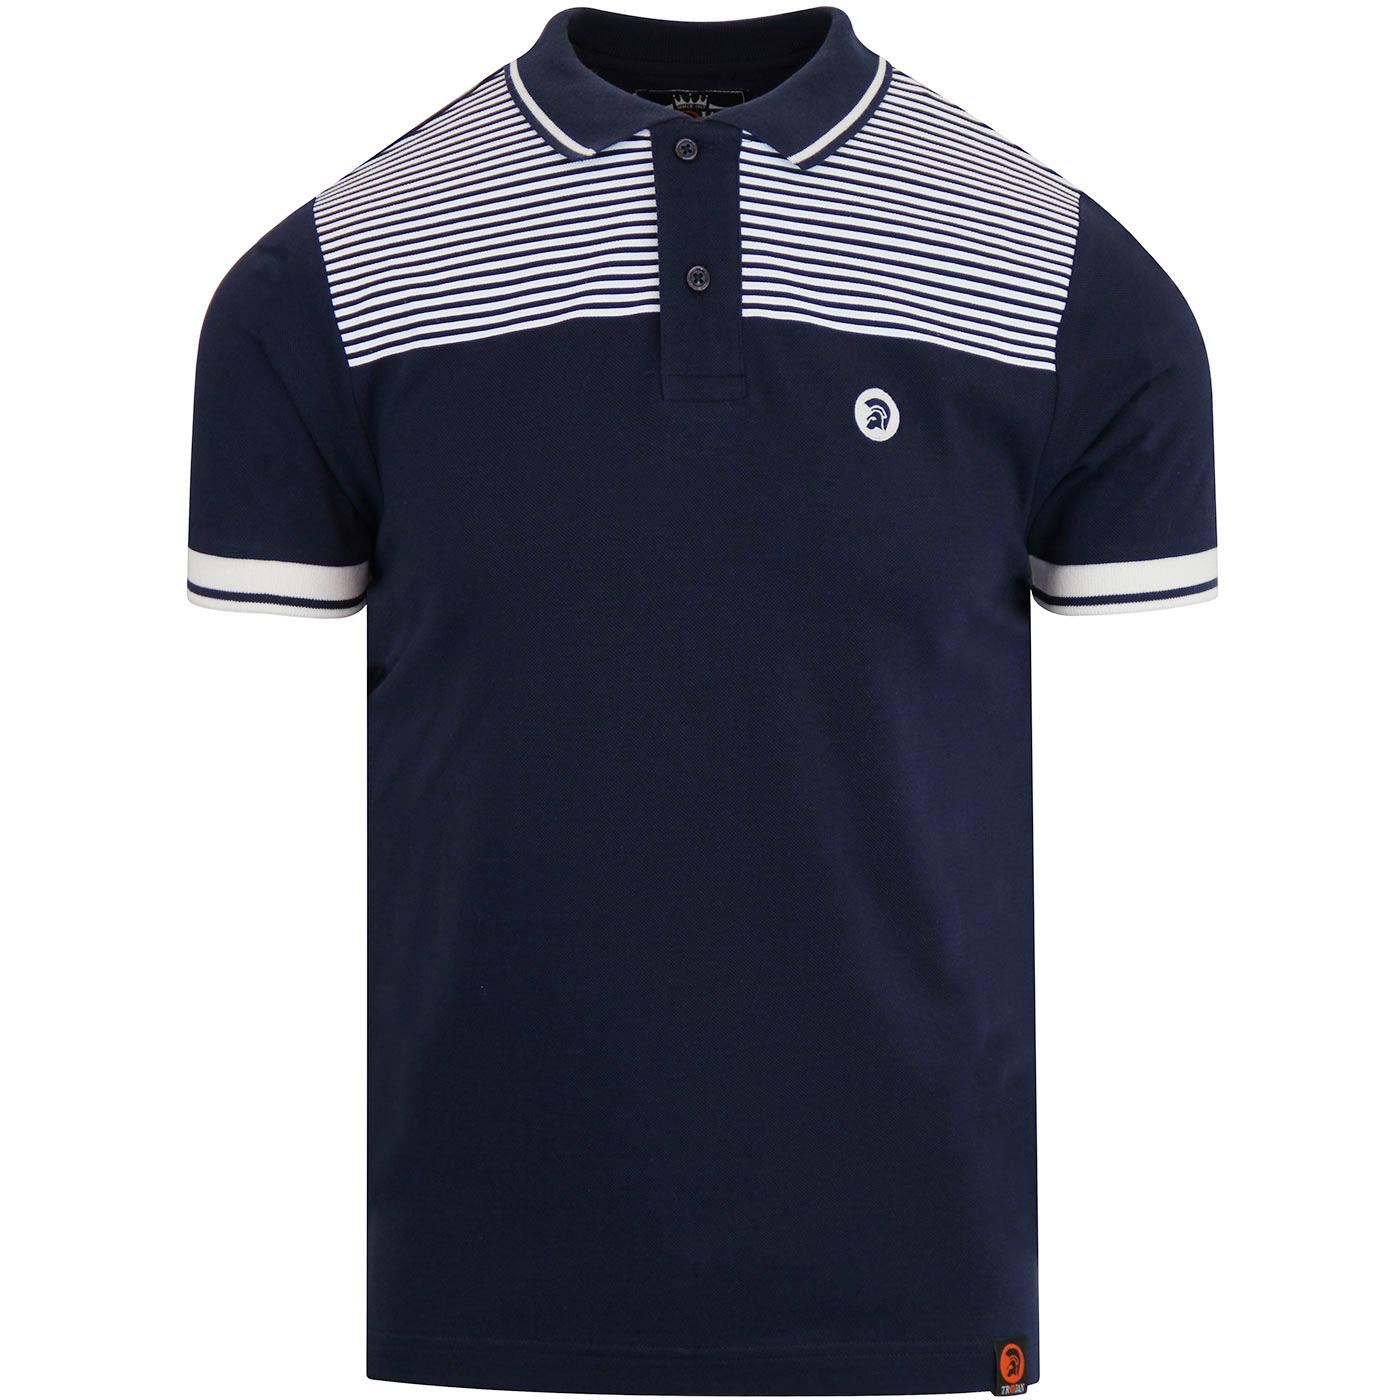 TROJAN RECORDS Men's Border Stripe Pique Polo NAVY